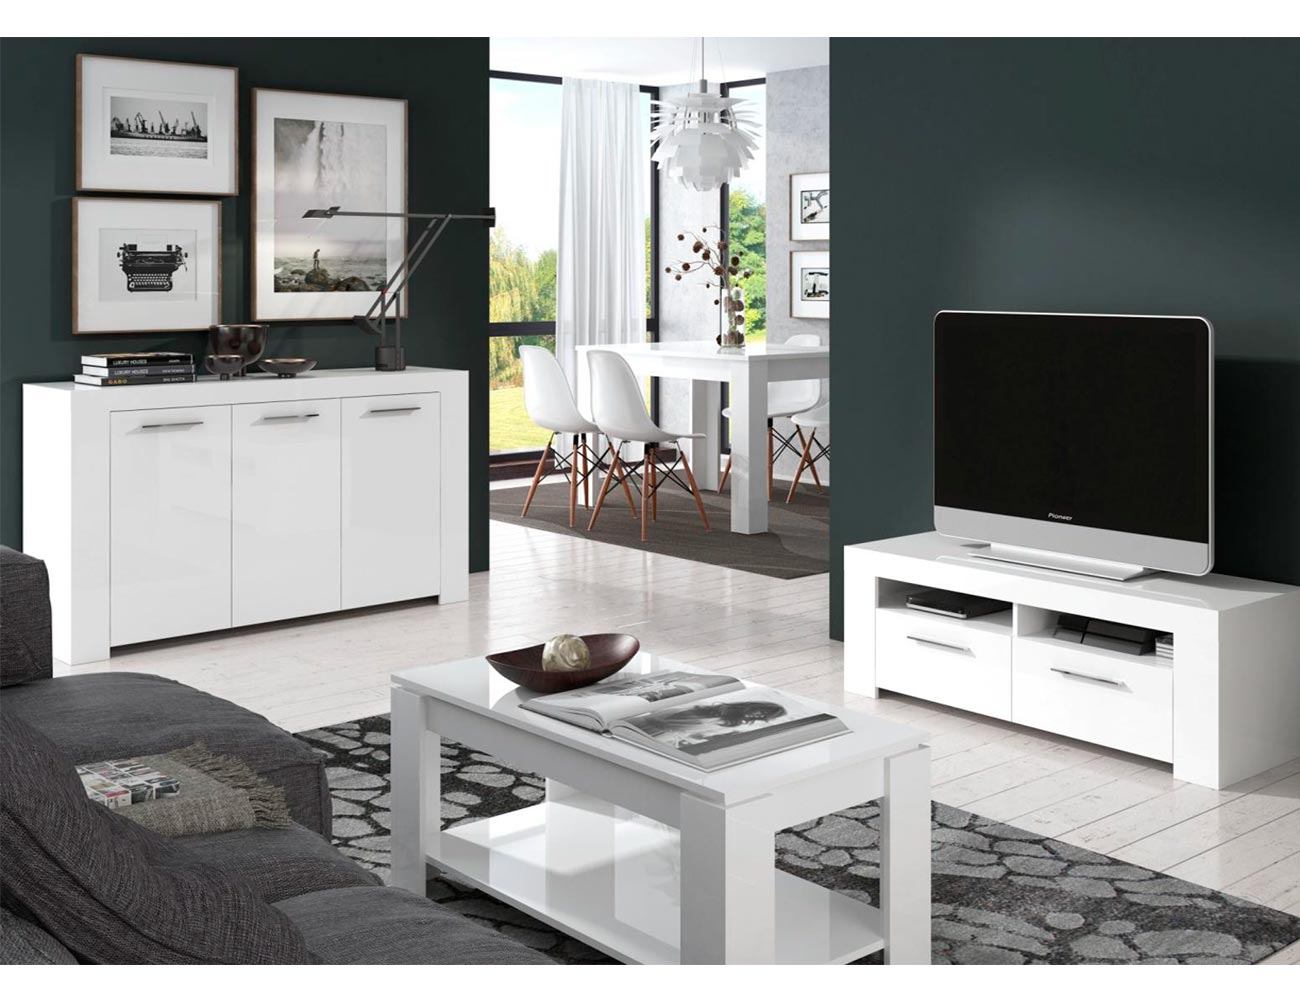 Mueble salon blanco brillo 2